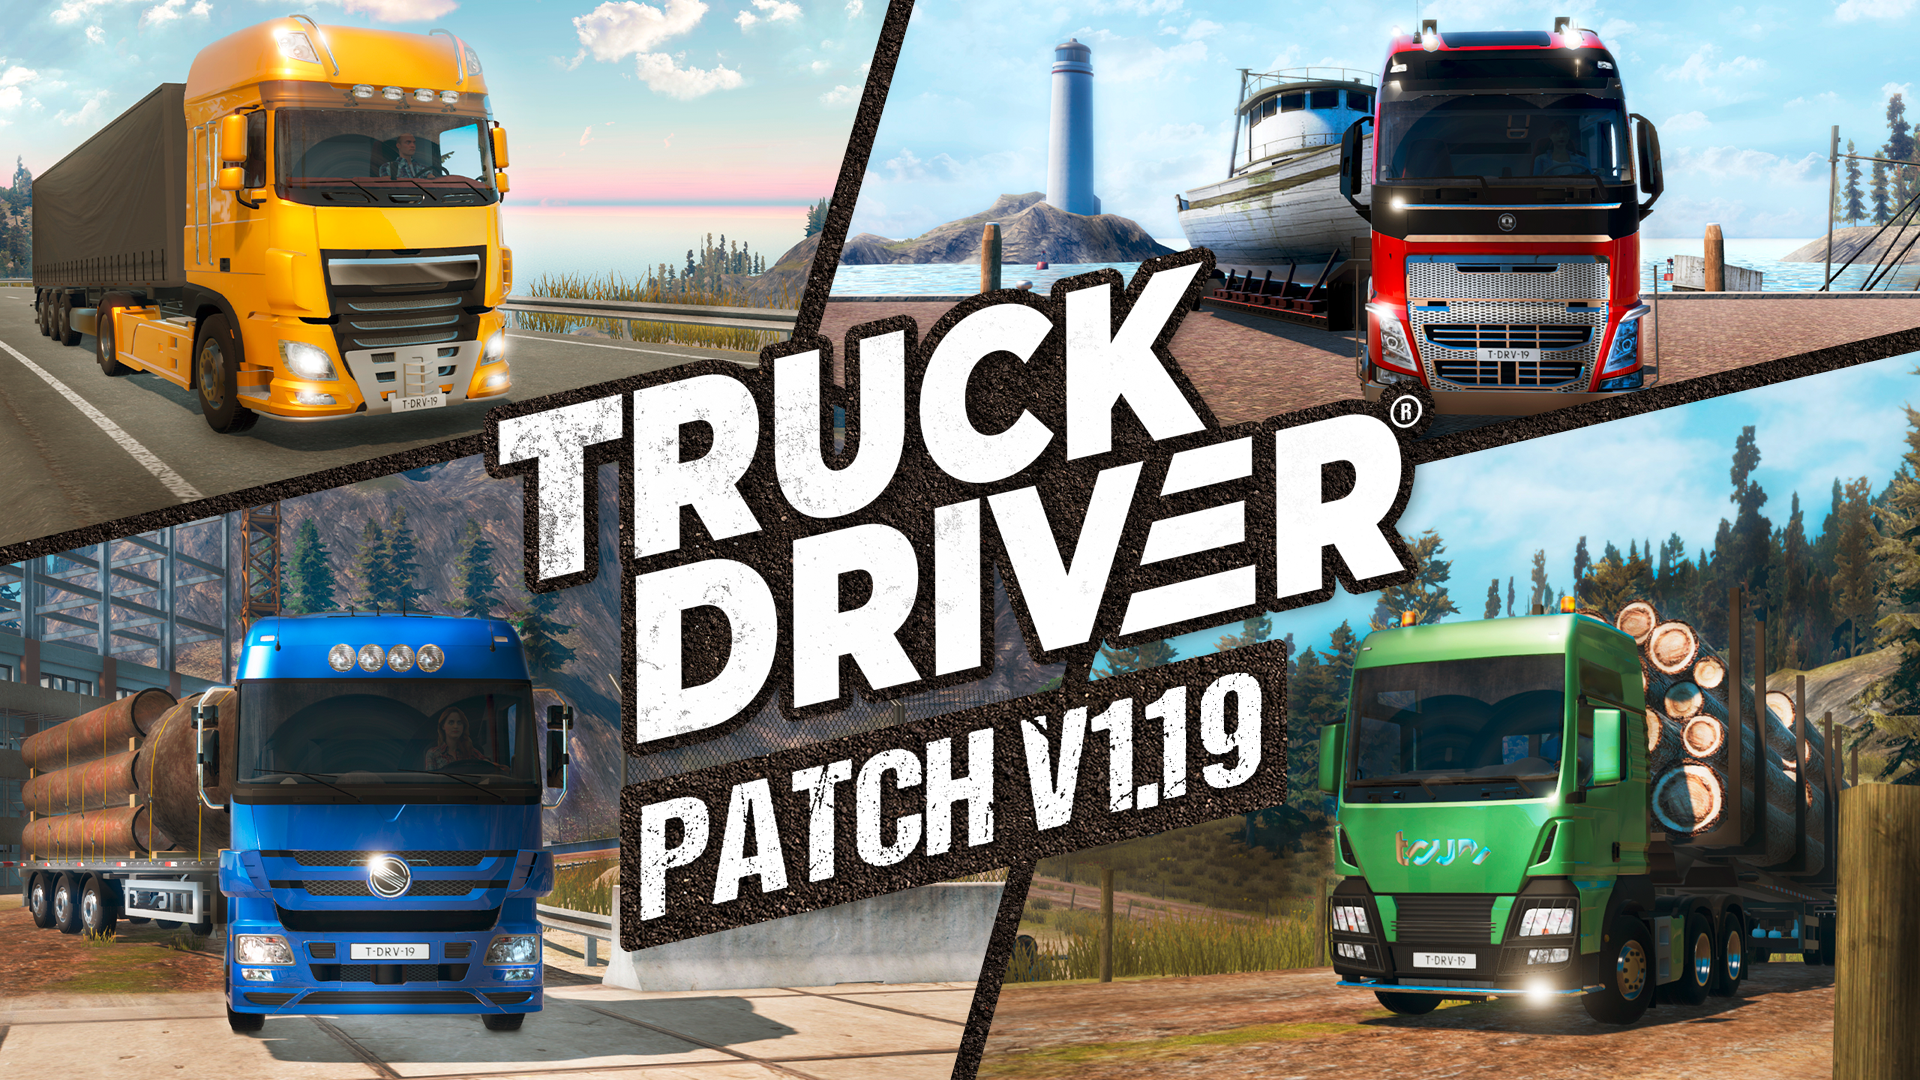 Patch V1.19 is now available on PlayStation®4 and Xbox One